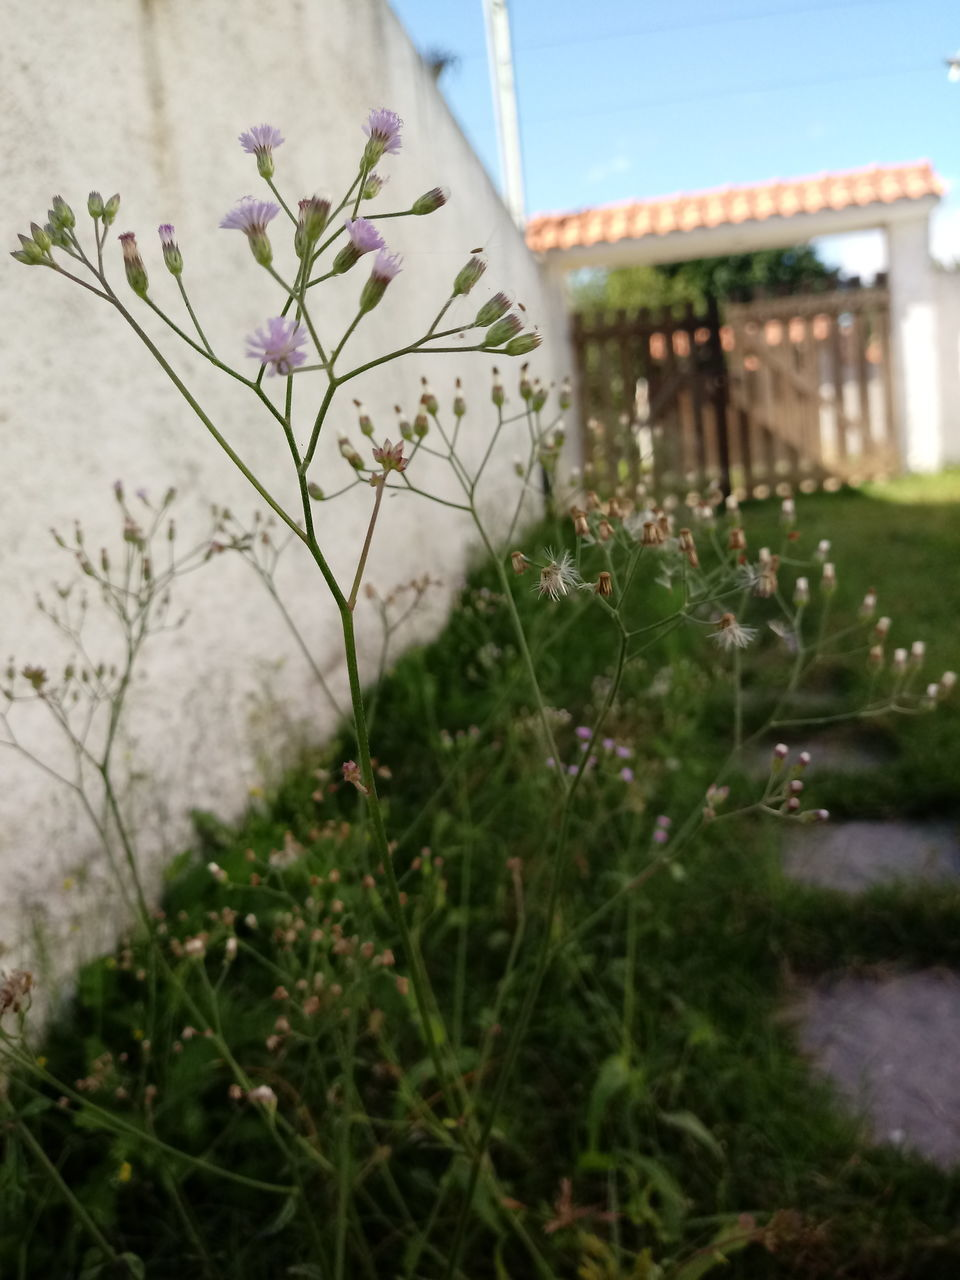 flower, nature, grass, plant, growth, no people, outdoors, building exterior, day, beauty in nature, architecture, built structure, fragility, freshness, sky, close-up